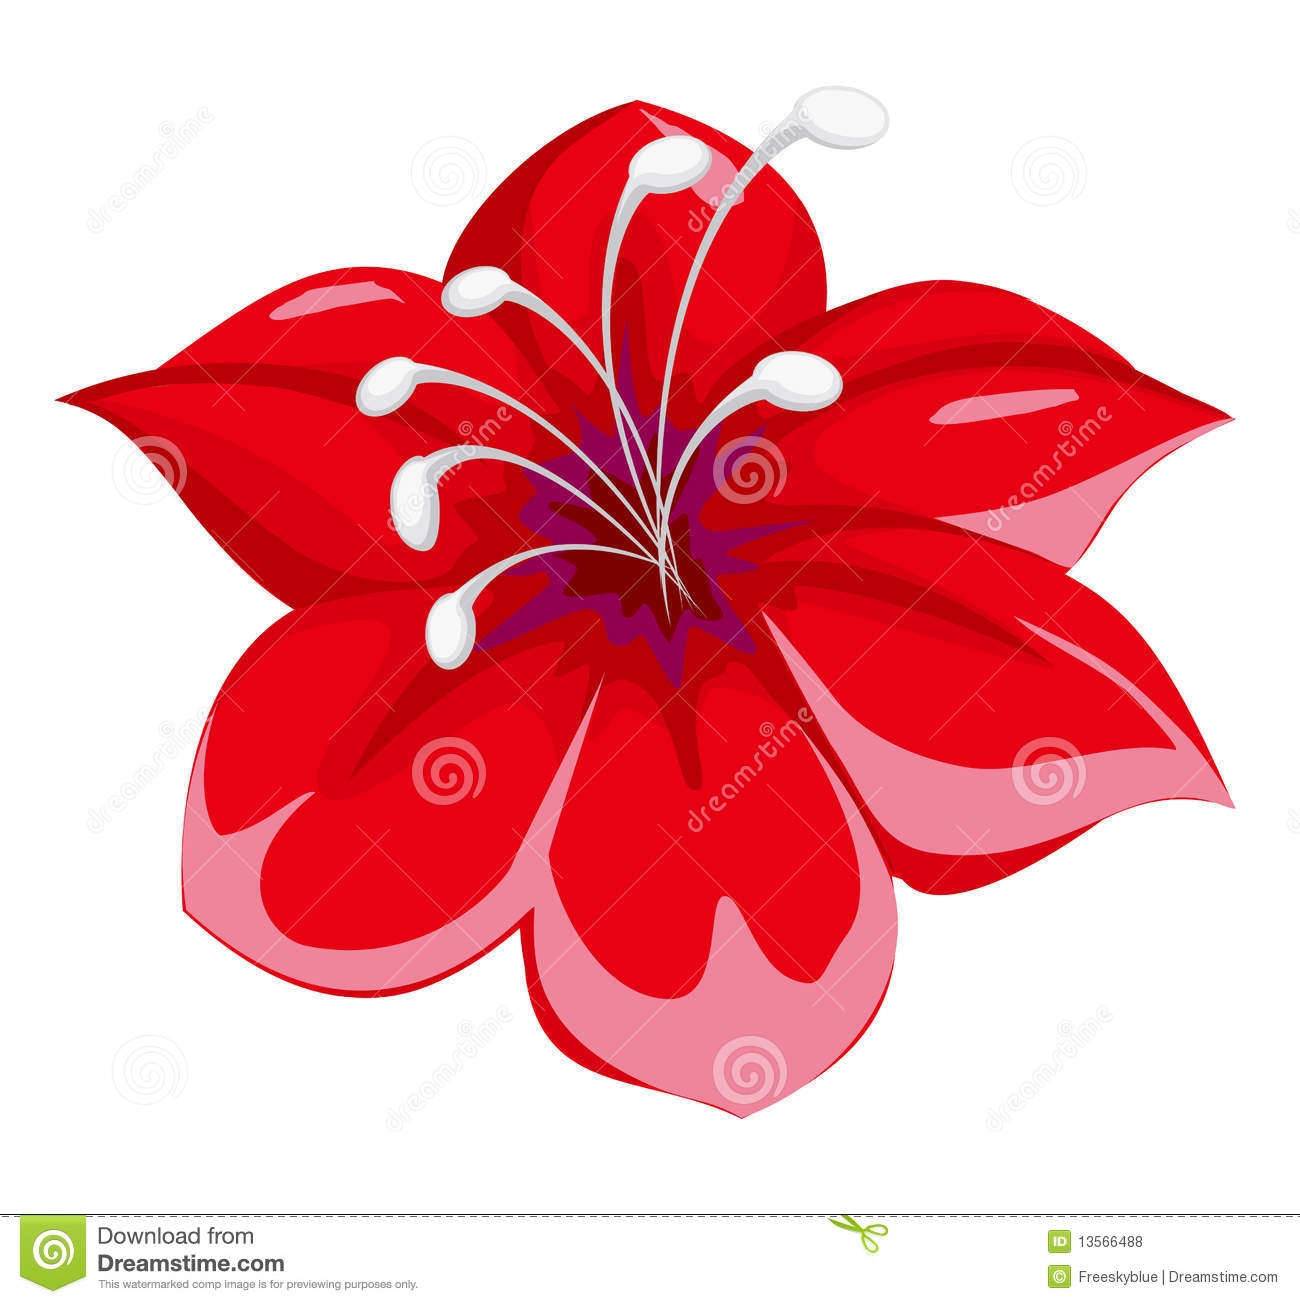 Red Flower Royalty Free Stock Photos Image 13566488